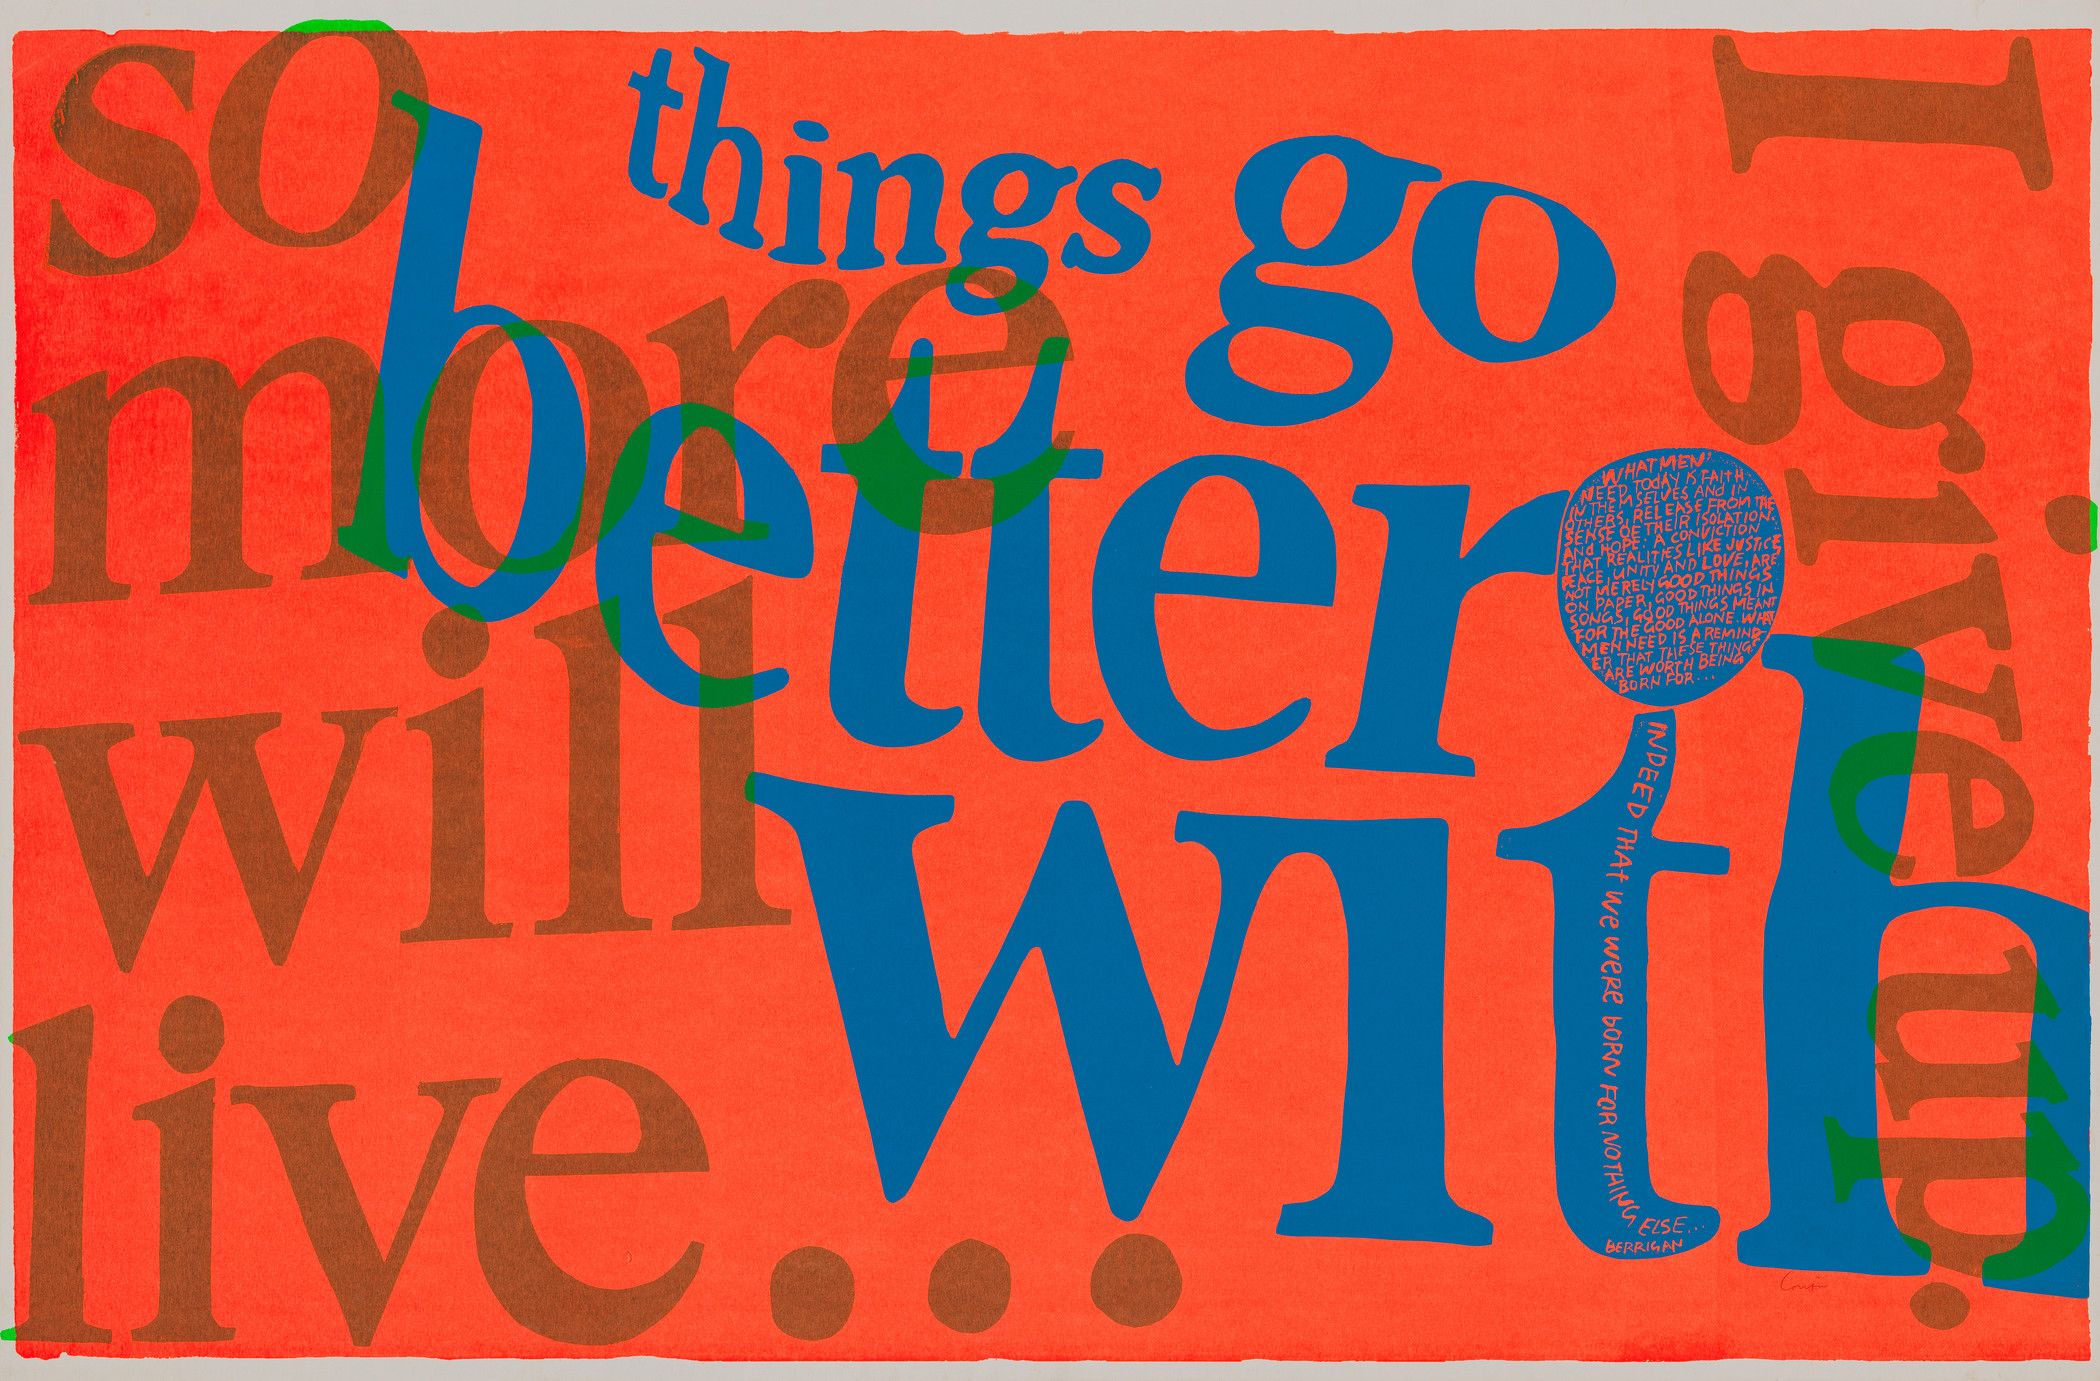 Corita Kent, things go better with, 1967, Los Angeles County Museum of Art, gift of Evgenia Citkowitz and Julian Sands, © Corita Art Center, photo © Museum Associates/LACMA